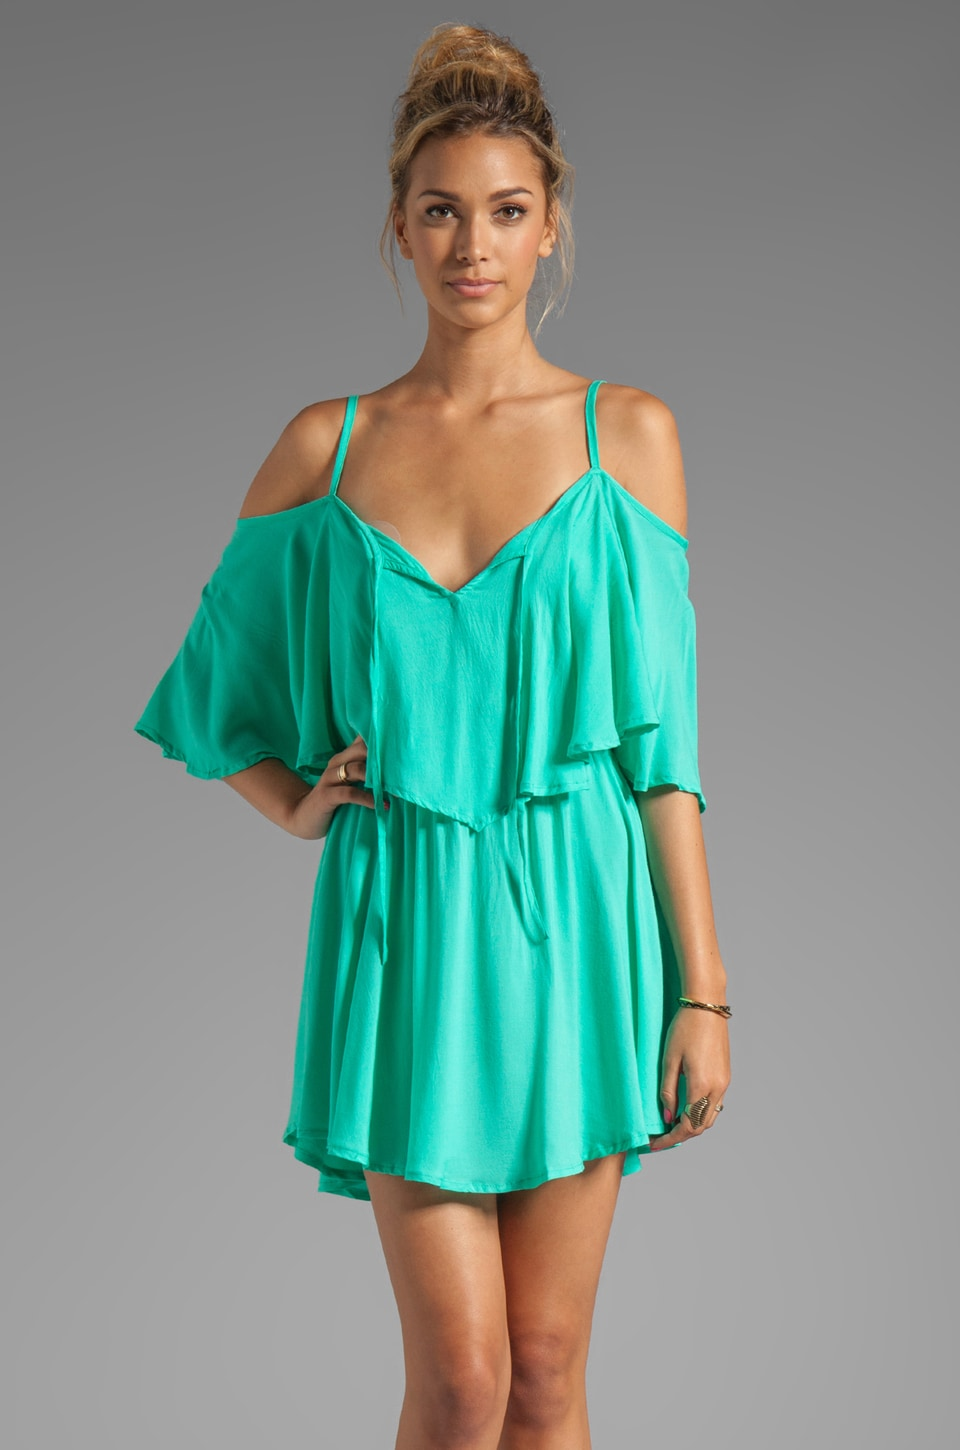 Indah Zhina Flounce Top Mini Dress With Interchangeable Top in Aqua